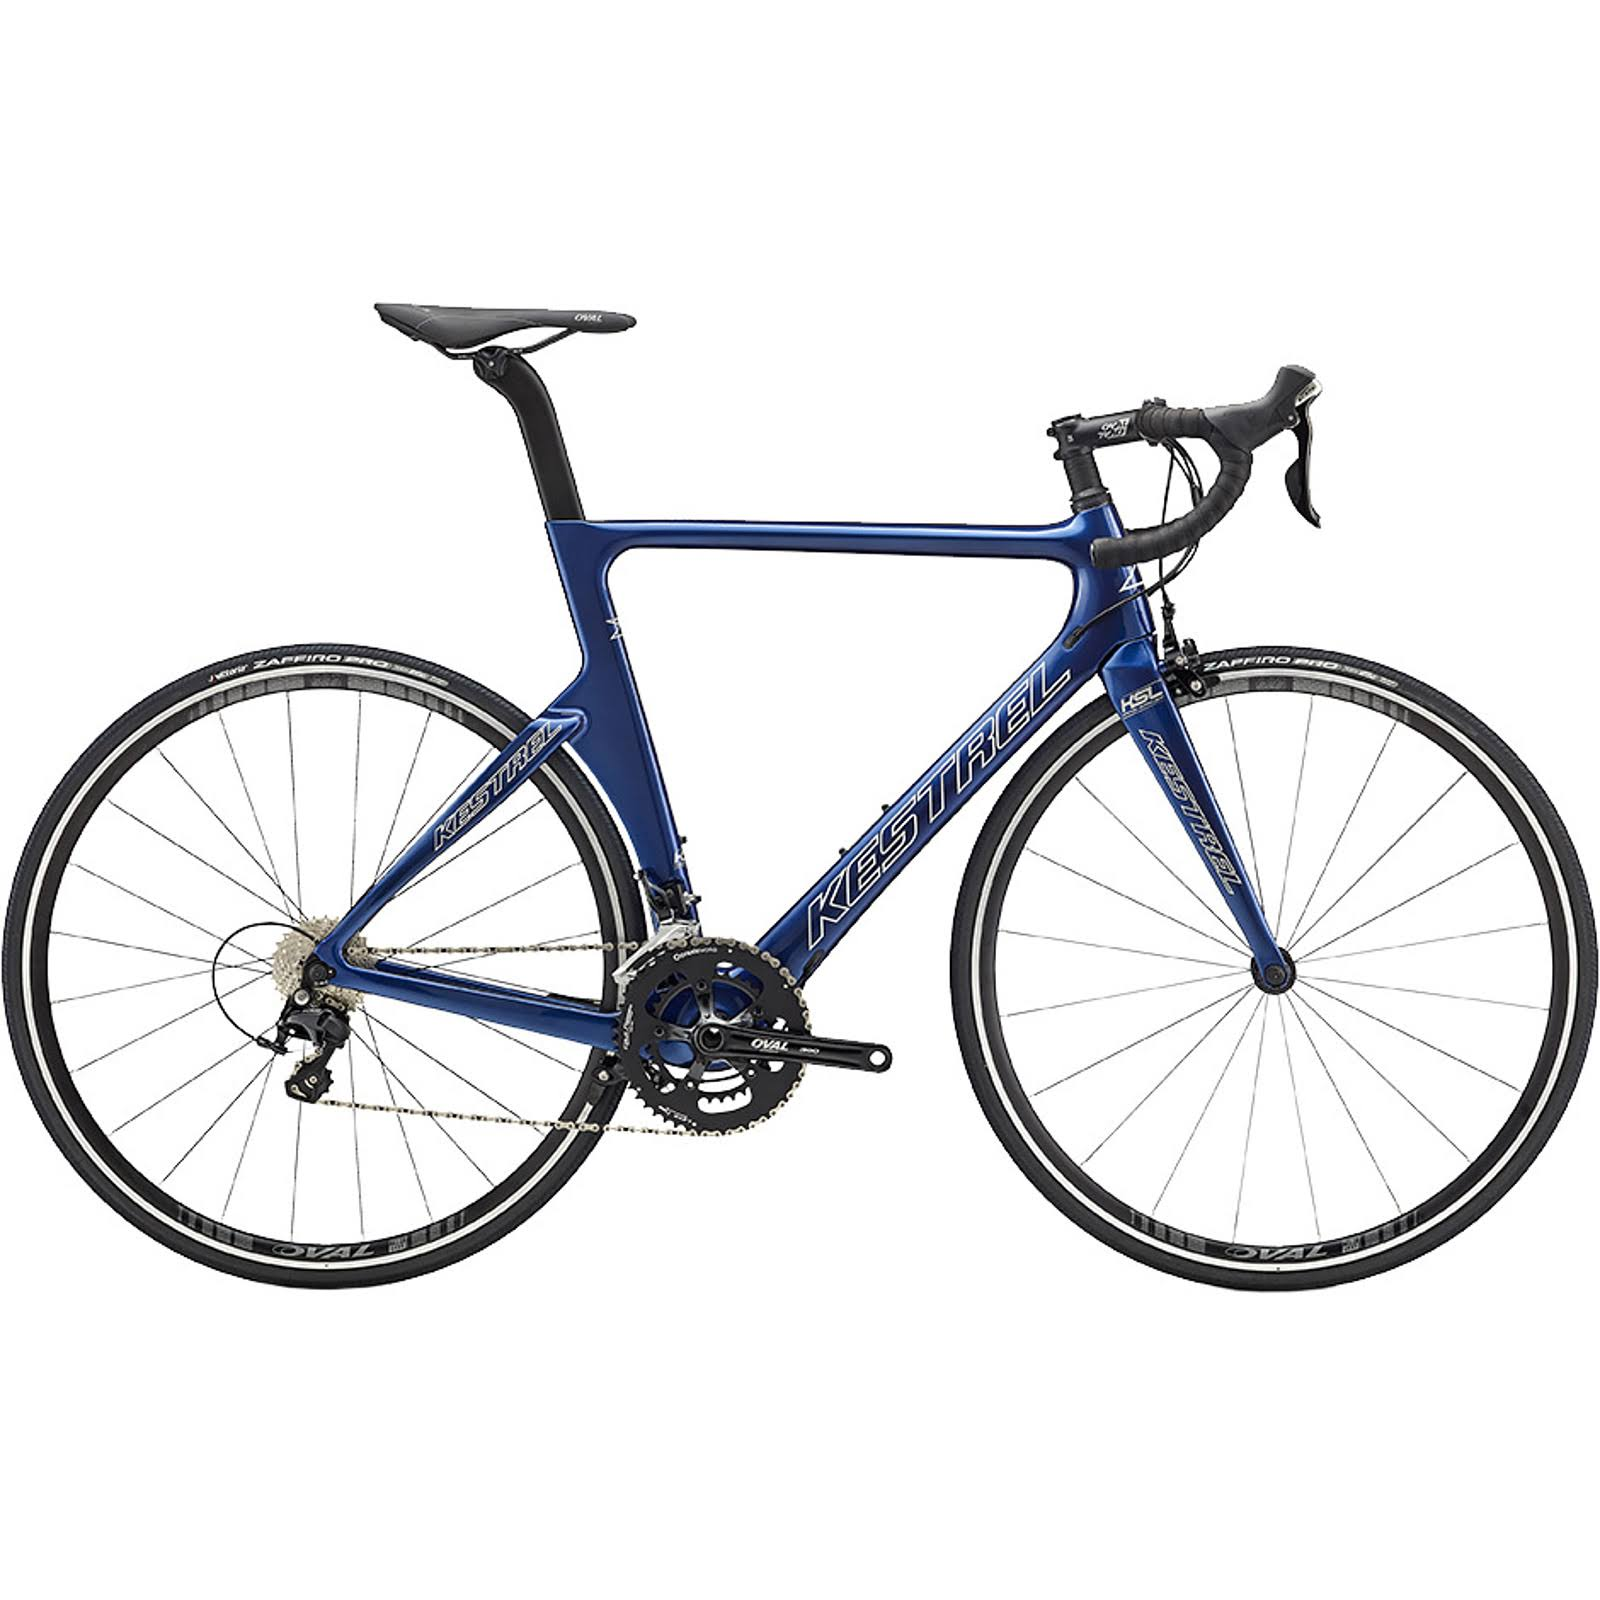 Kestrel Talon x Shimano 105 Road Bike 2018 52cm